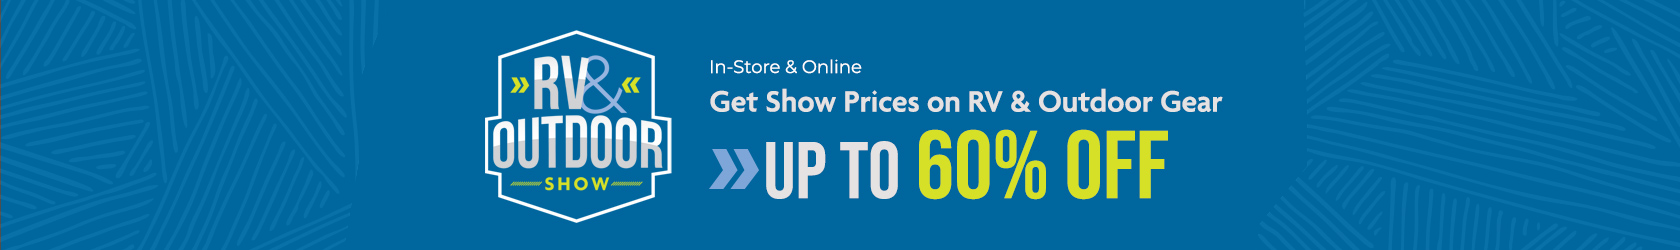 Get Show Prices on RV & Outdoor Gear - Up to 60% Off